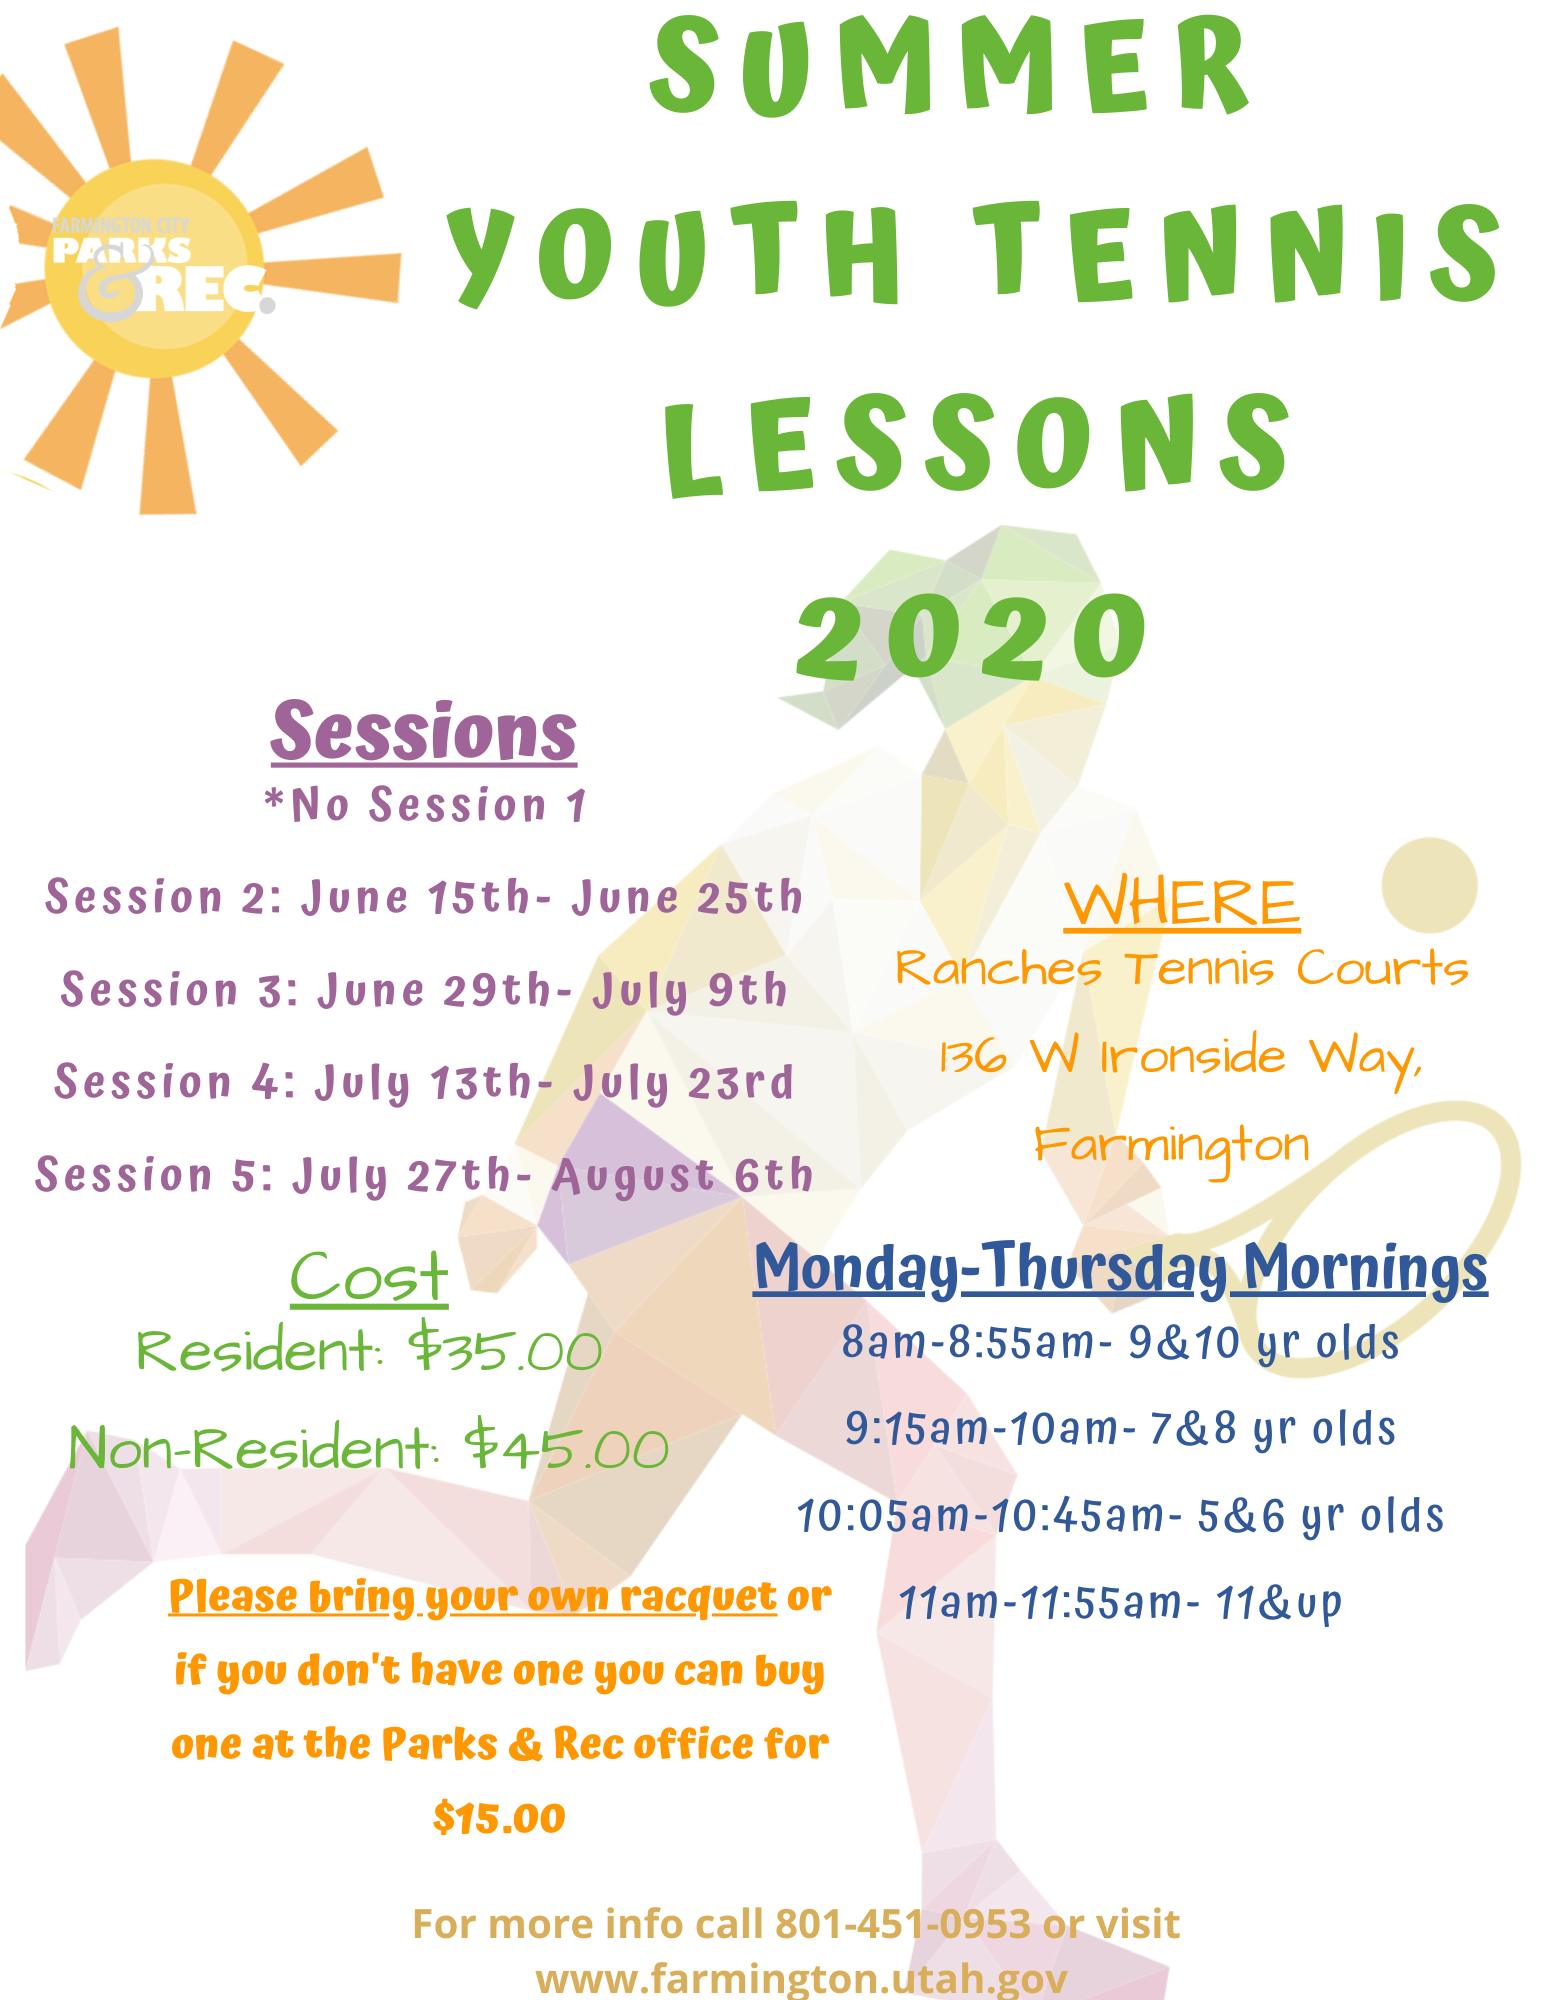 Summer Youth Tennis Lessons